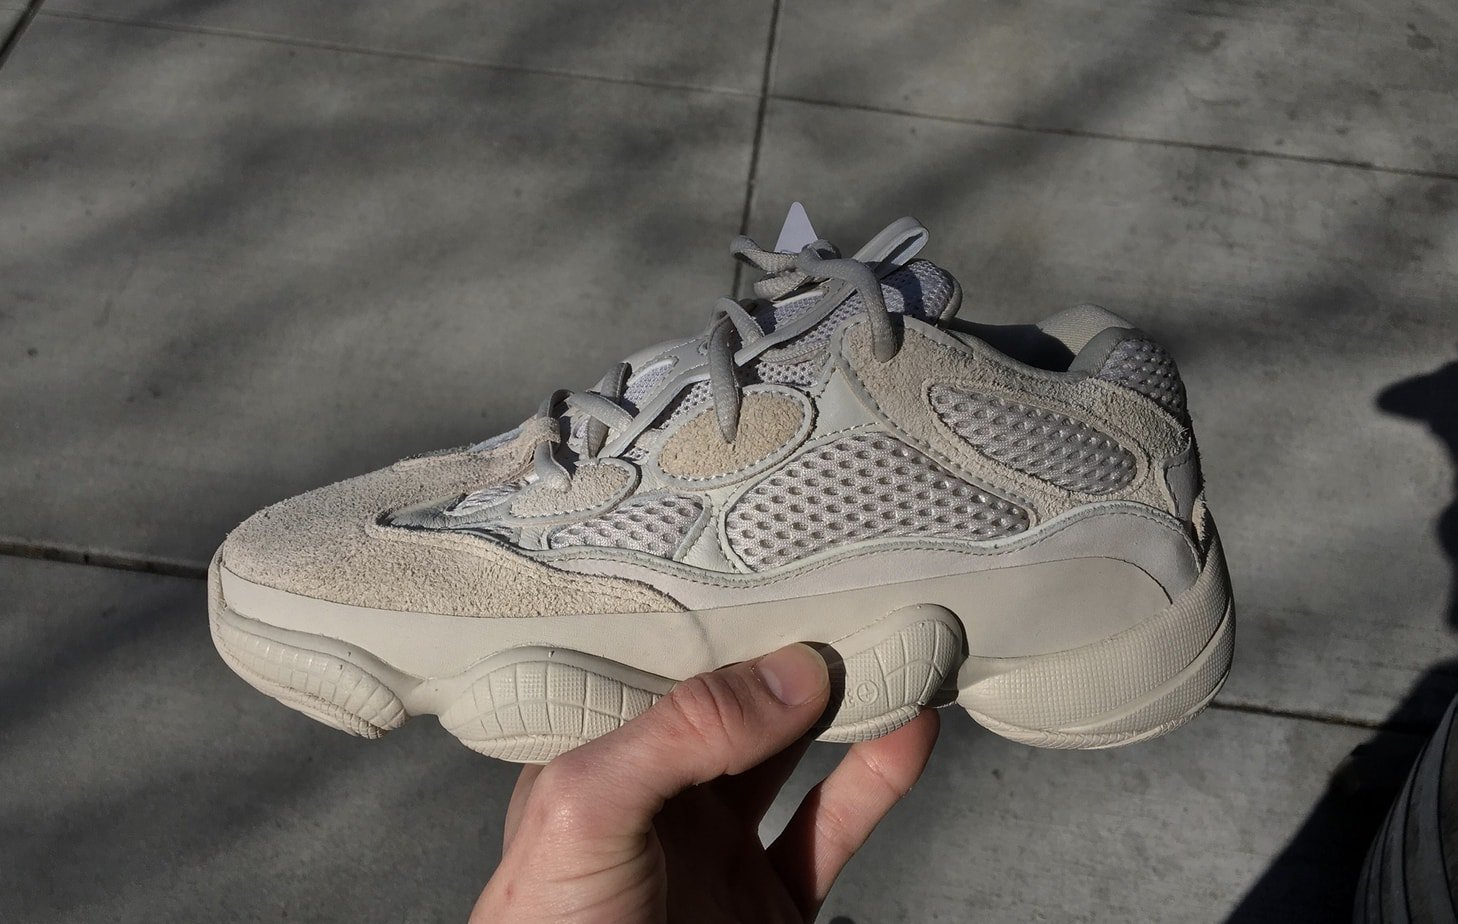 reputable site 2d675 62aeb Adidas Yeezy 500 Blush Release Date Finally Confirmed